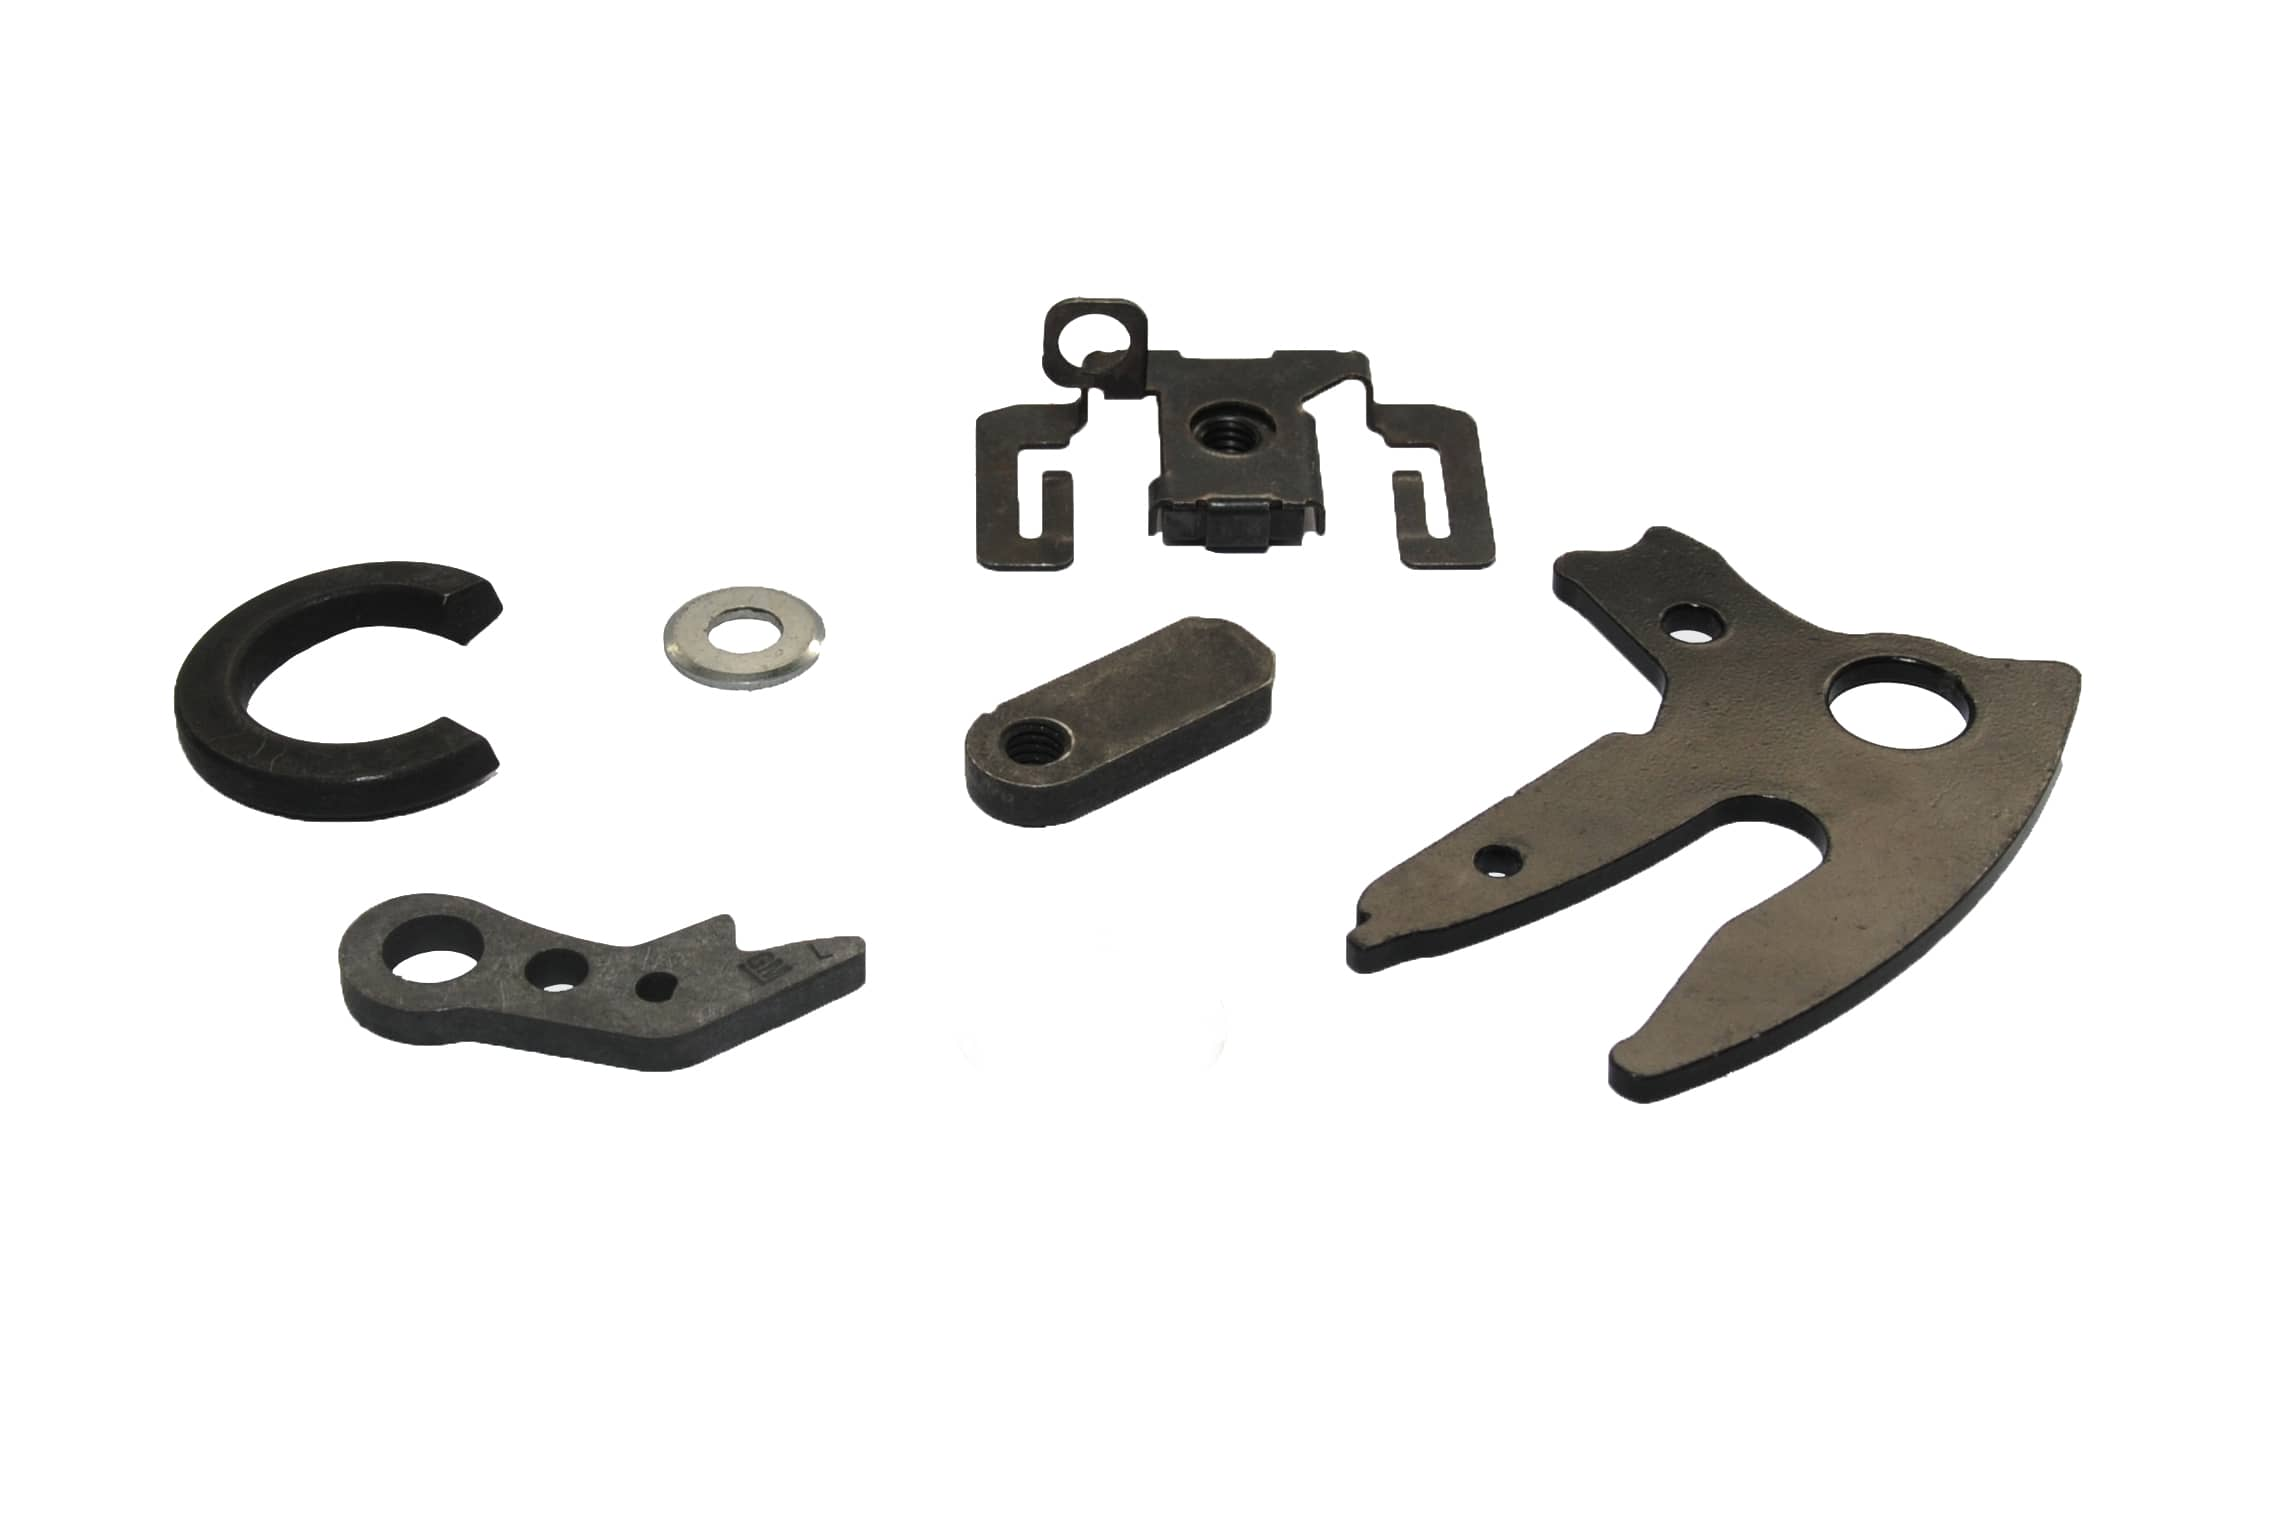 H.S.P. Fasteners Stanzteile